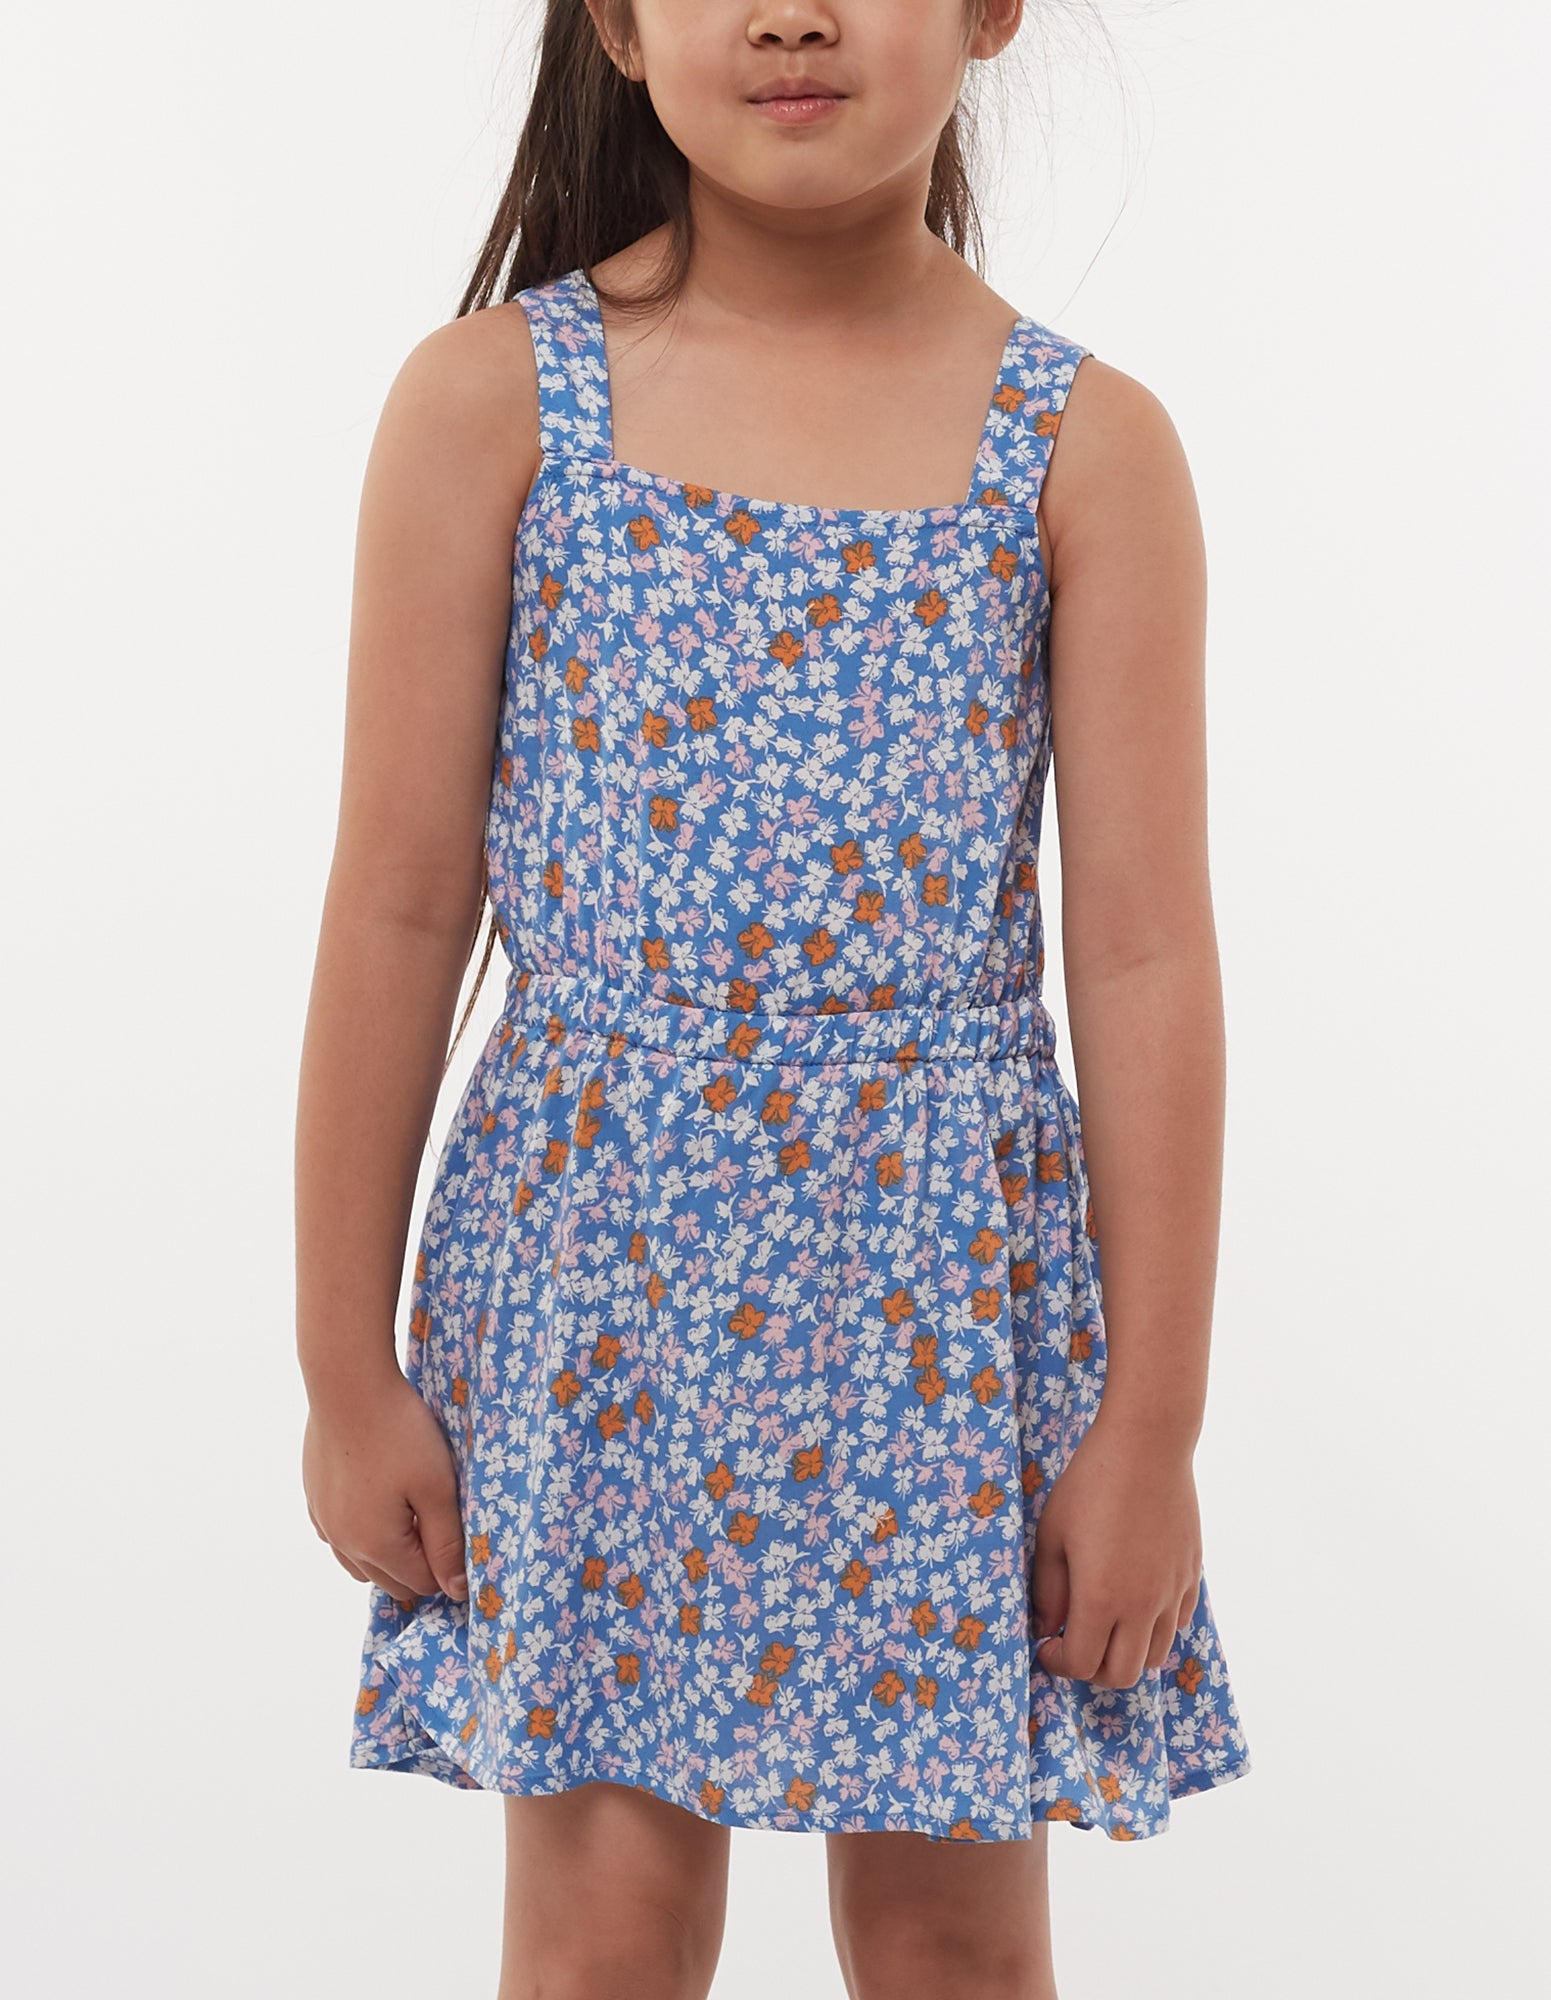 Eve's Sister Ditsy Meadow Dress